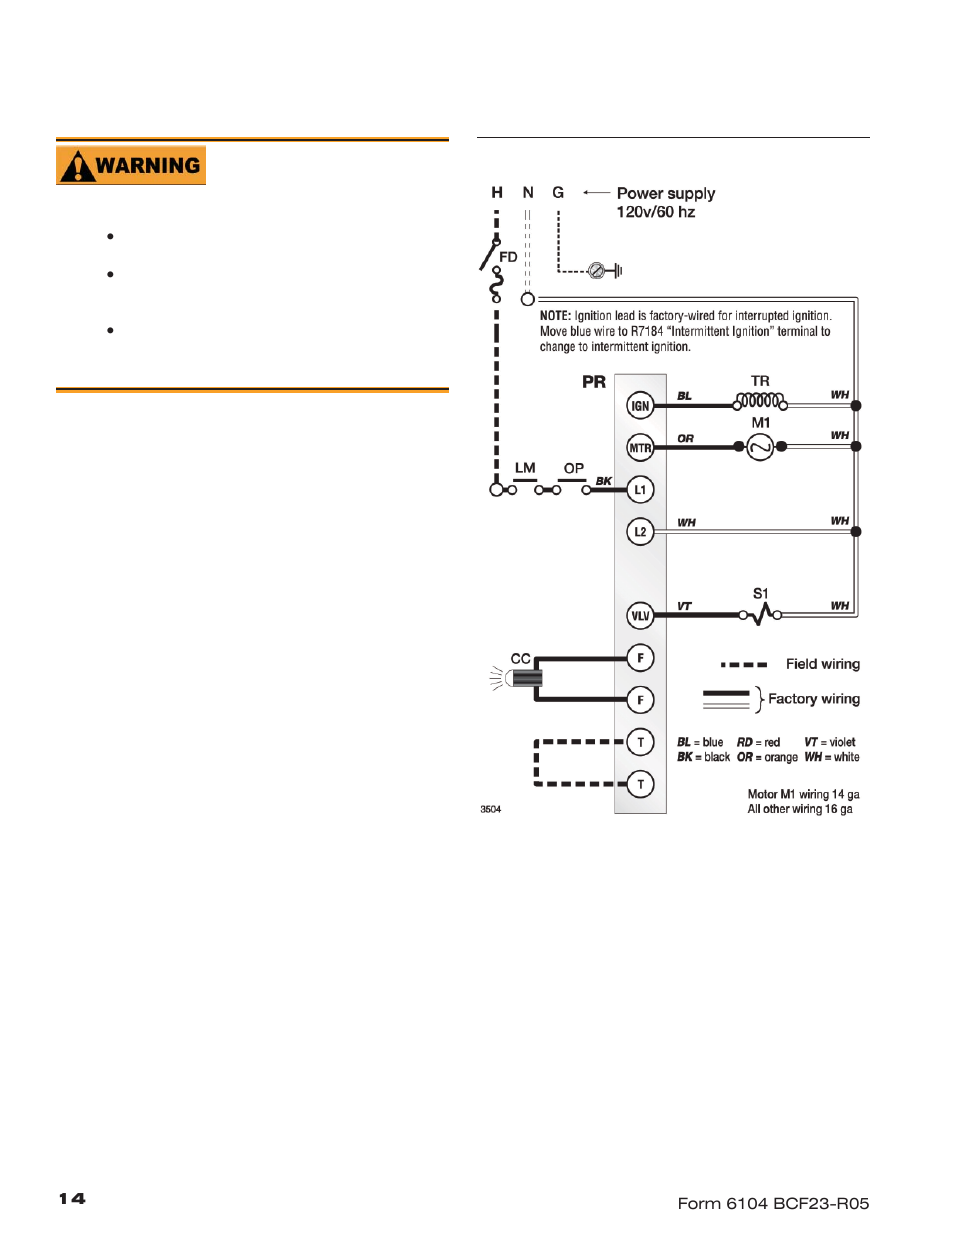 beckett cf1400 page14 wire the burner, r7184b beckett cf1400 user manual page 14 24 beckett r7184b wiring diagram at bakdesigns.co